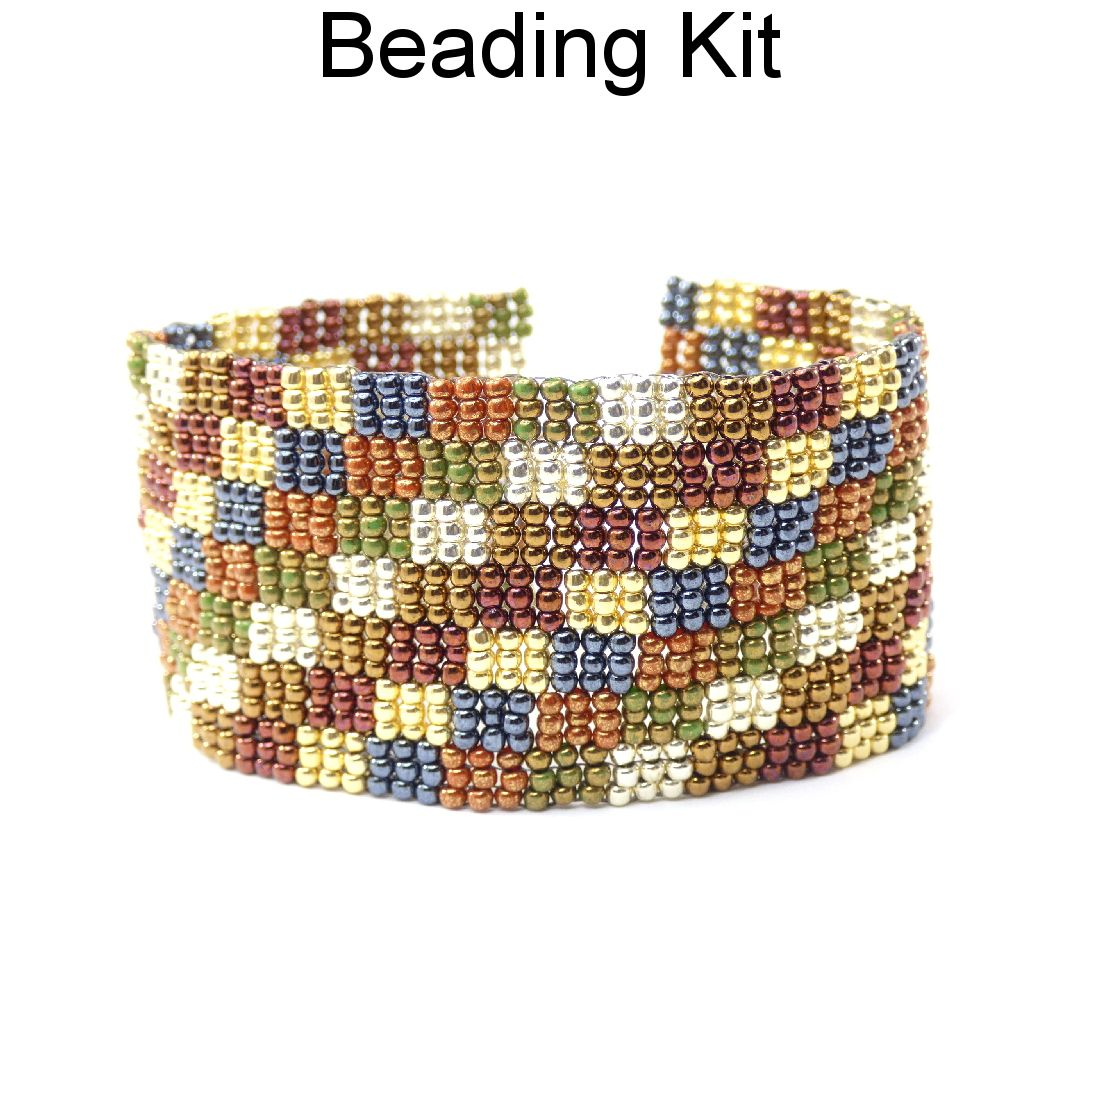 Beaded diagonal patchwork 3 drop peyote quilt bracelet beading beaded diagonal patchwork 3 drop peyote quilt bracelet beading pattern tutorial beading kit baditri Images